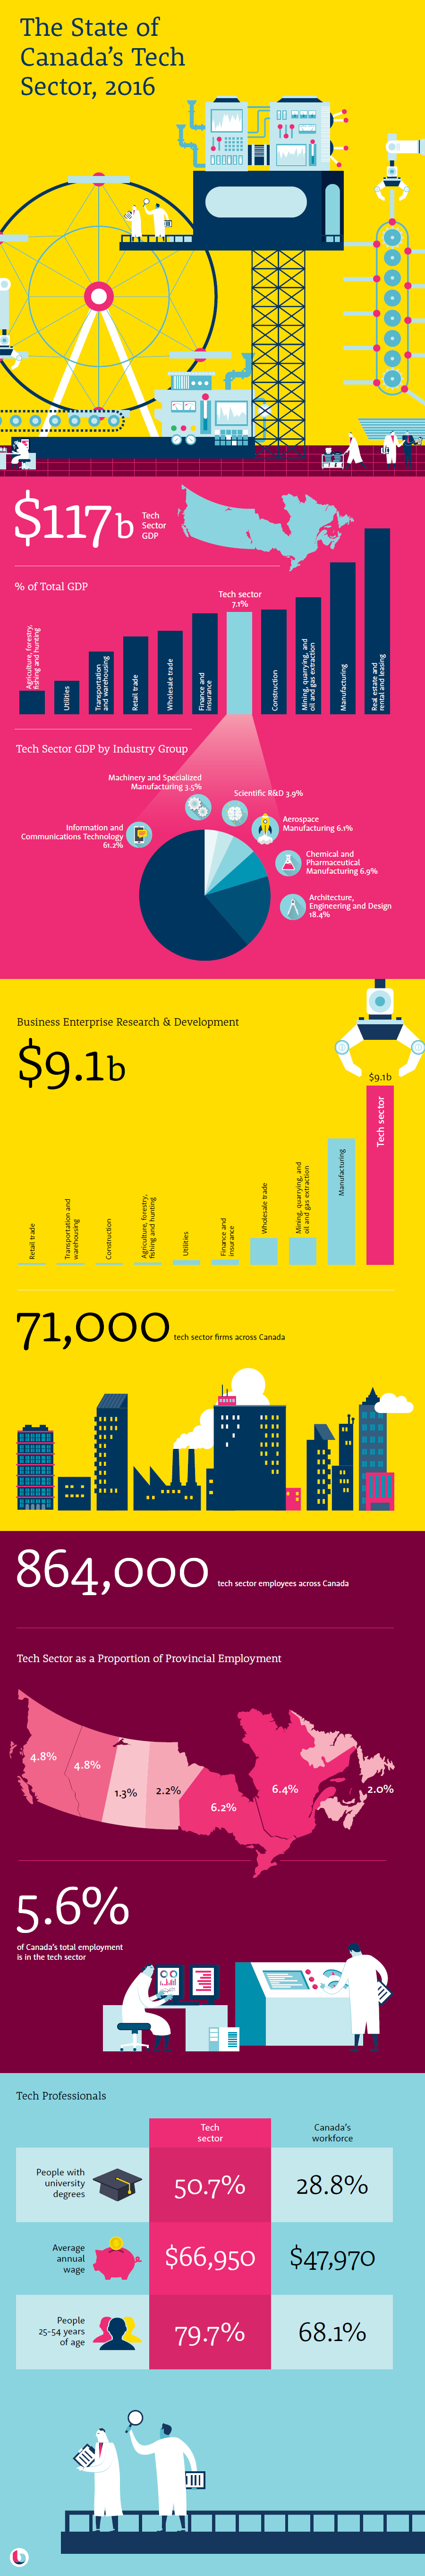 State of Canada's tech sector infographic